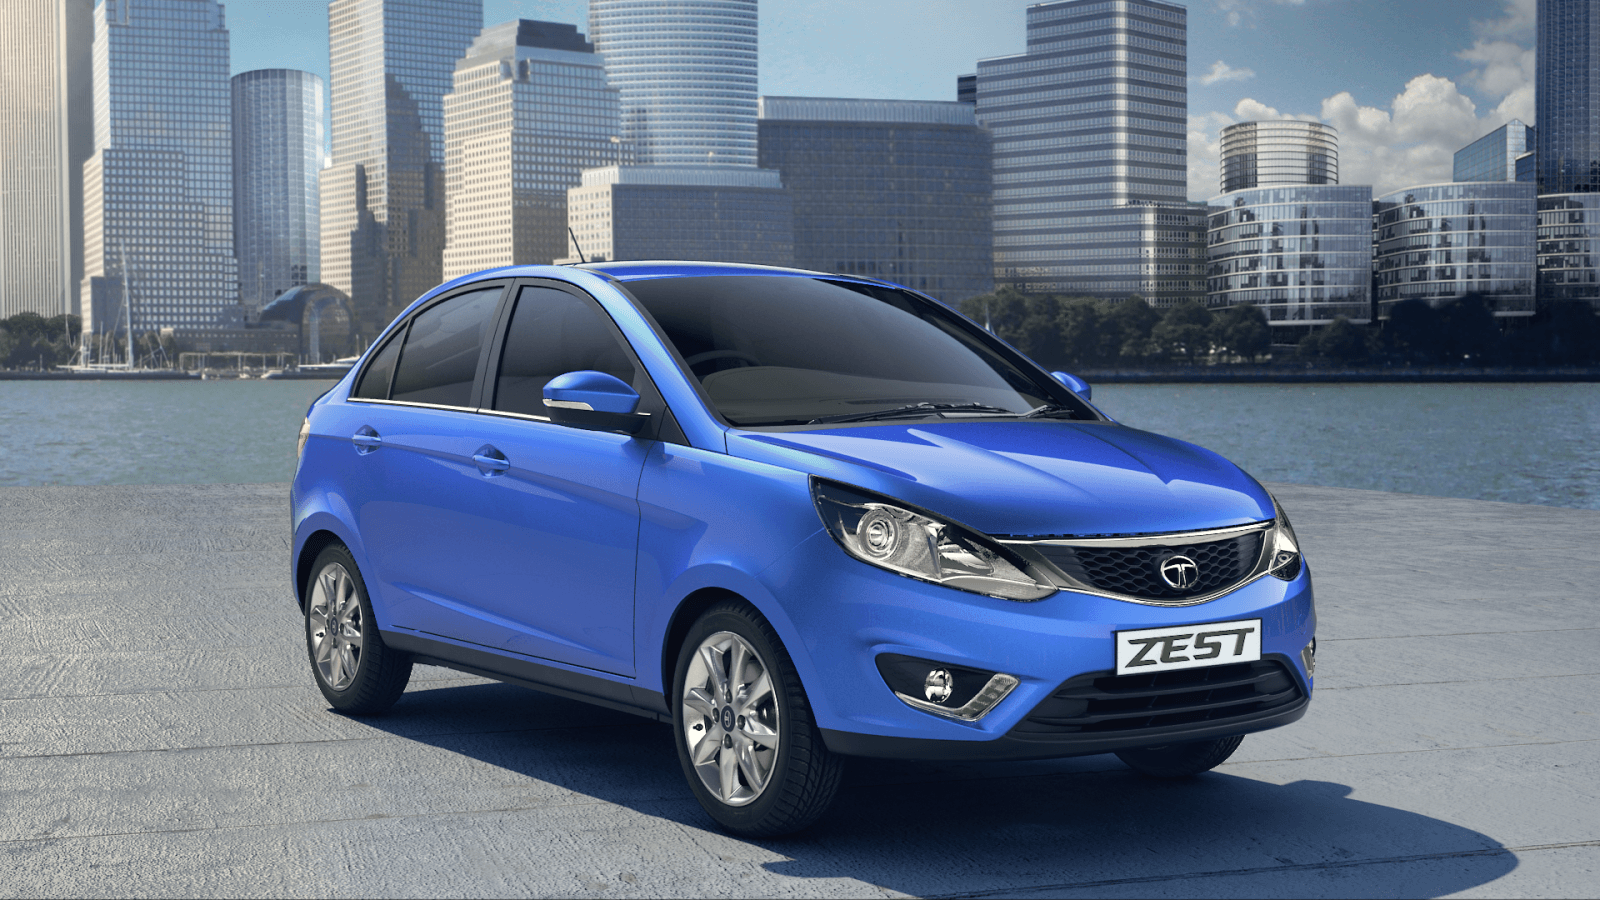 Tata Zest Images. Zest Interior/Exterior Pictures & Photos, 360 ...